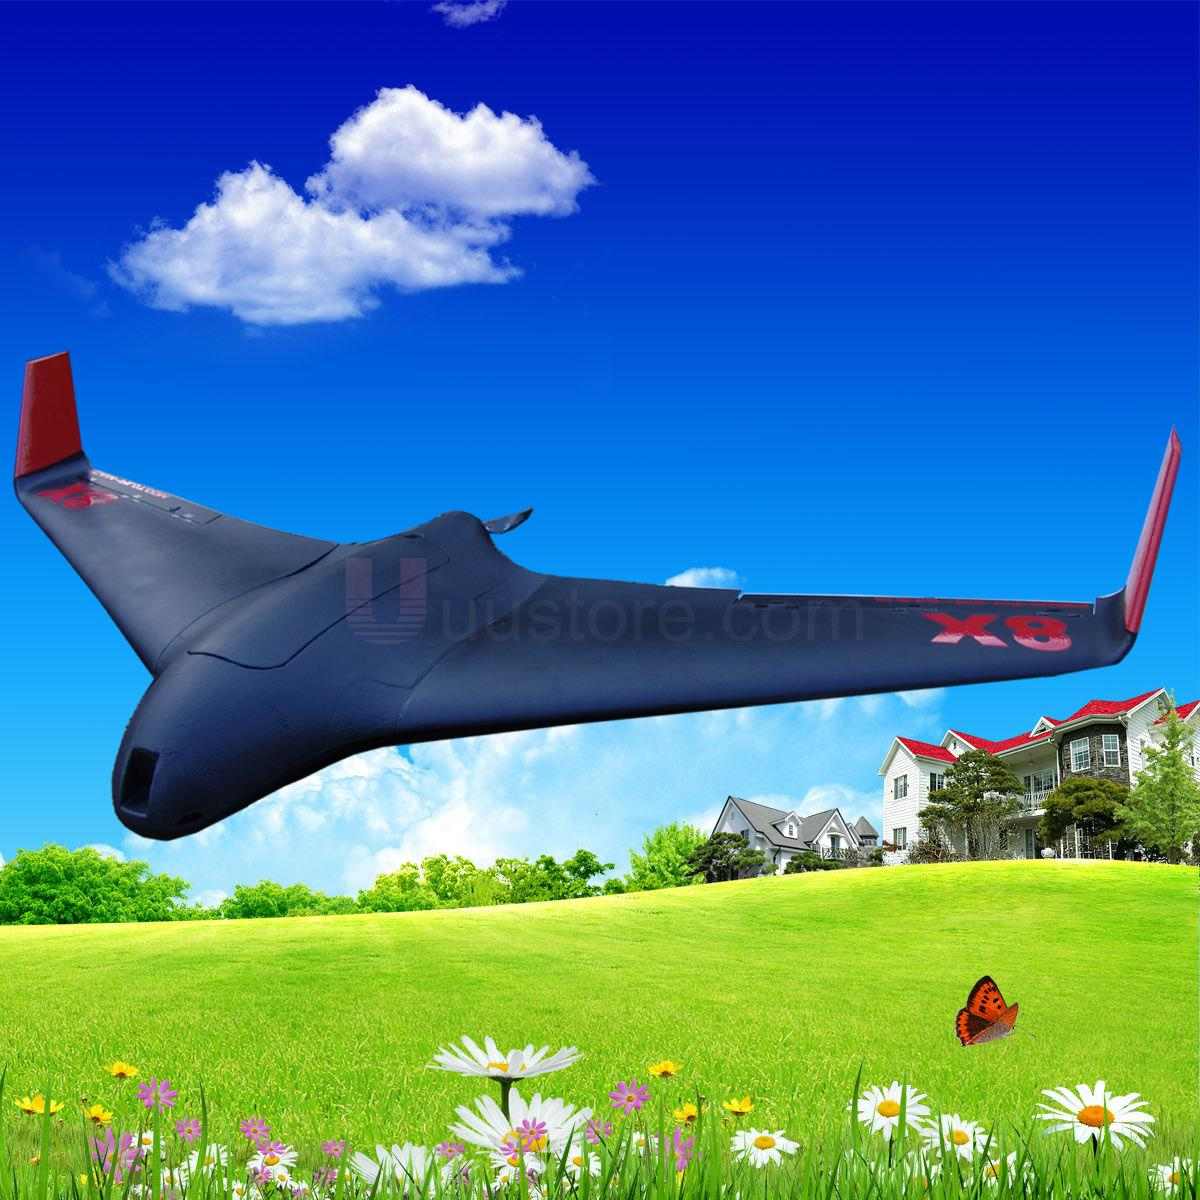 2120mm BIG plane RC Plane KIT (Black) FPV Fixed-wing SkyWalker X8 X-8 EPO UAV Flying Wing FPV RC airplene remote controller toy fpv x uav talon uav 1720mm fpv plane gray white version flying glider epo modle rc model airplane